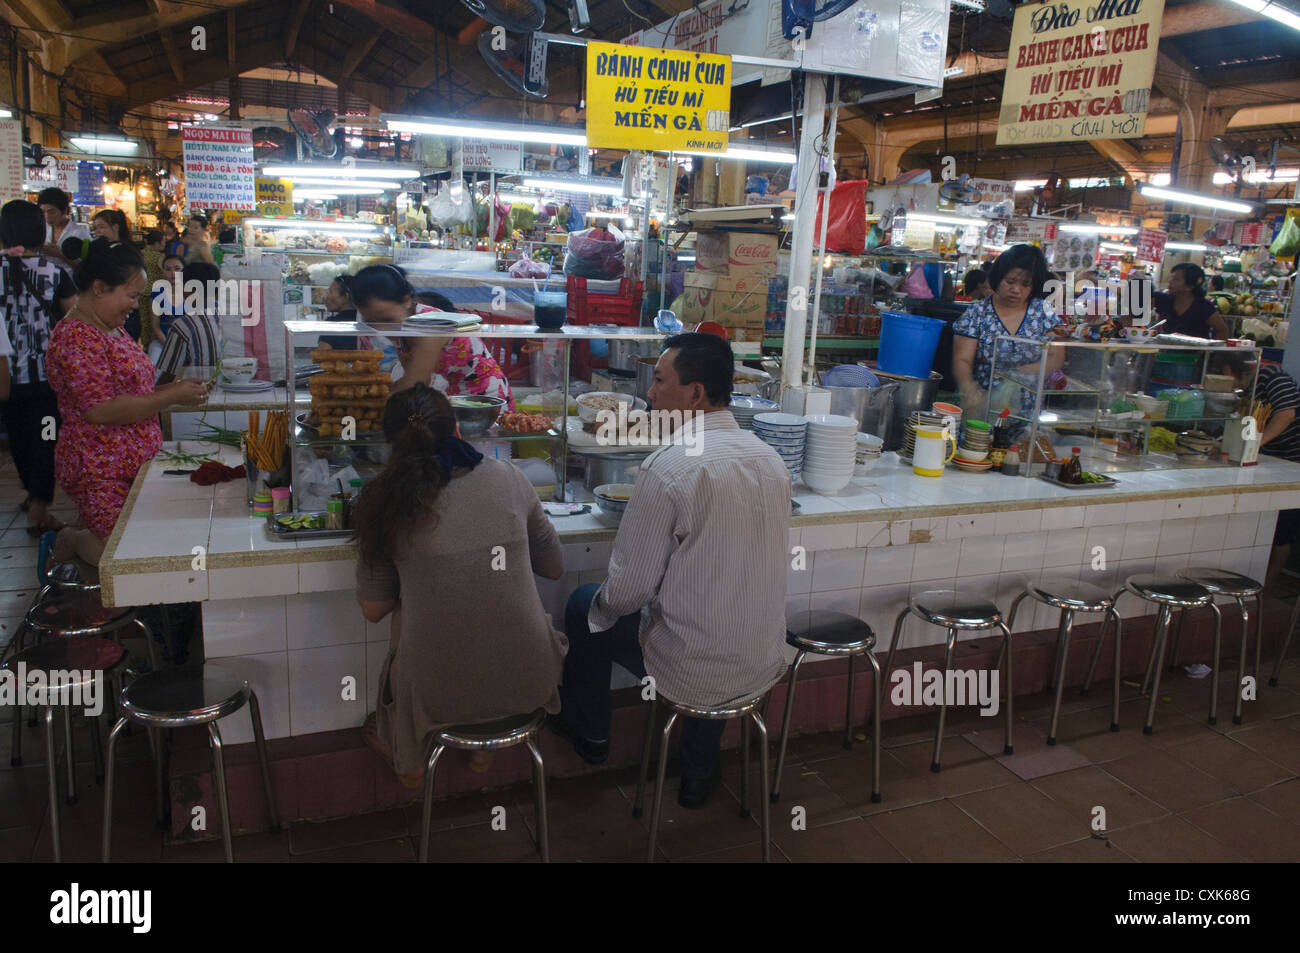 Stock Photo - food stall inside the Ben Thanh Market in Ho Chi Minh City in Vietnam